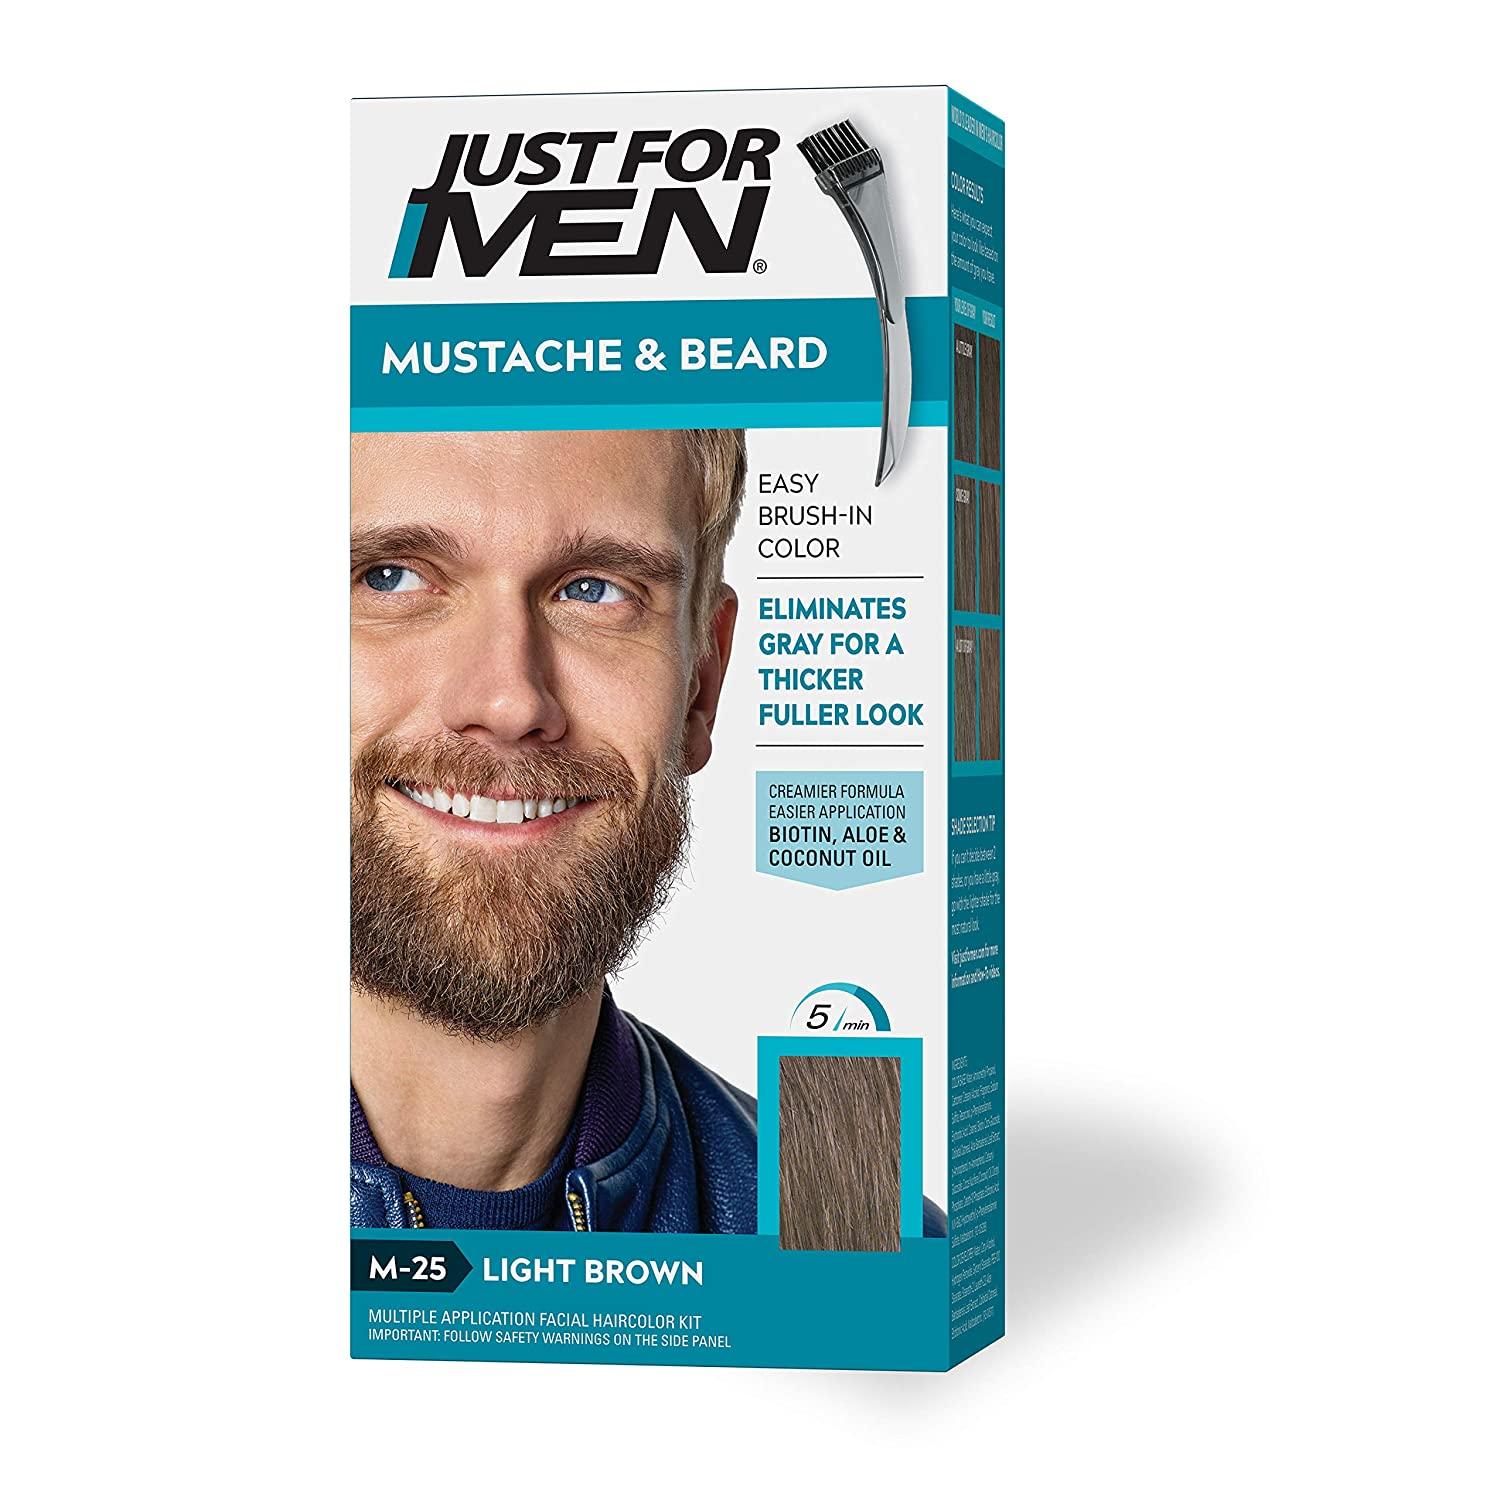 Just For Men mustache and beard dye coloring